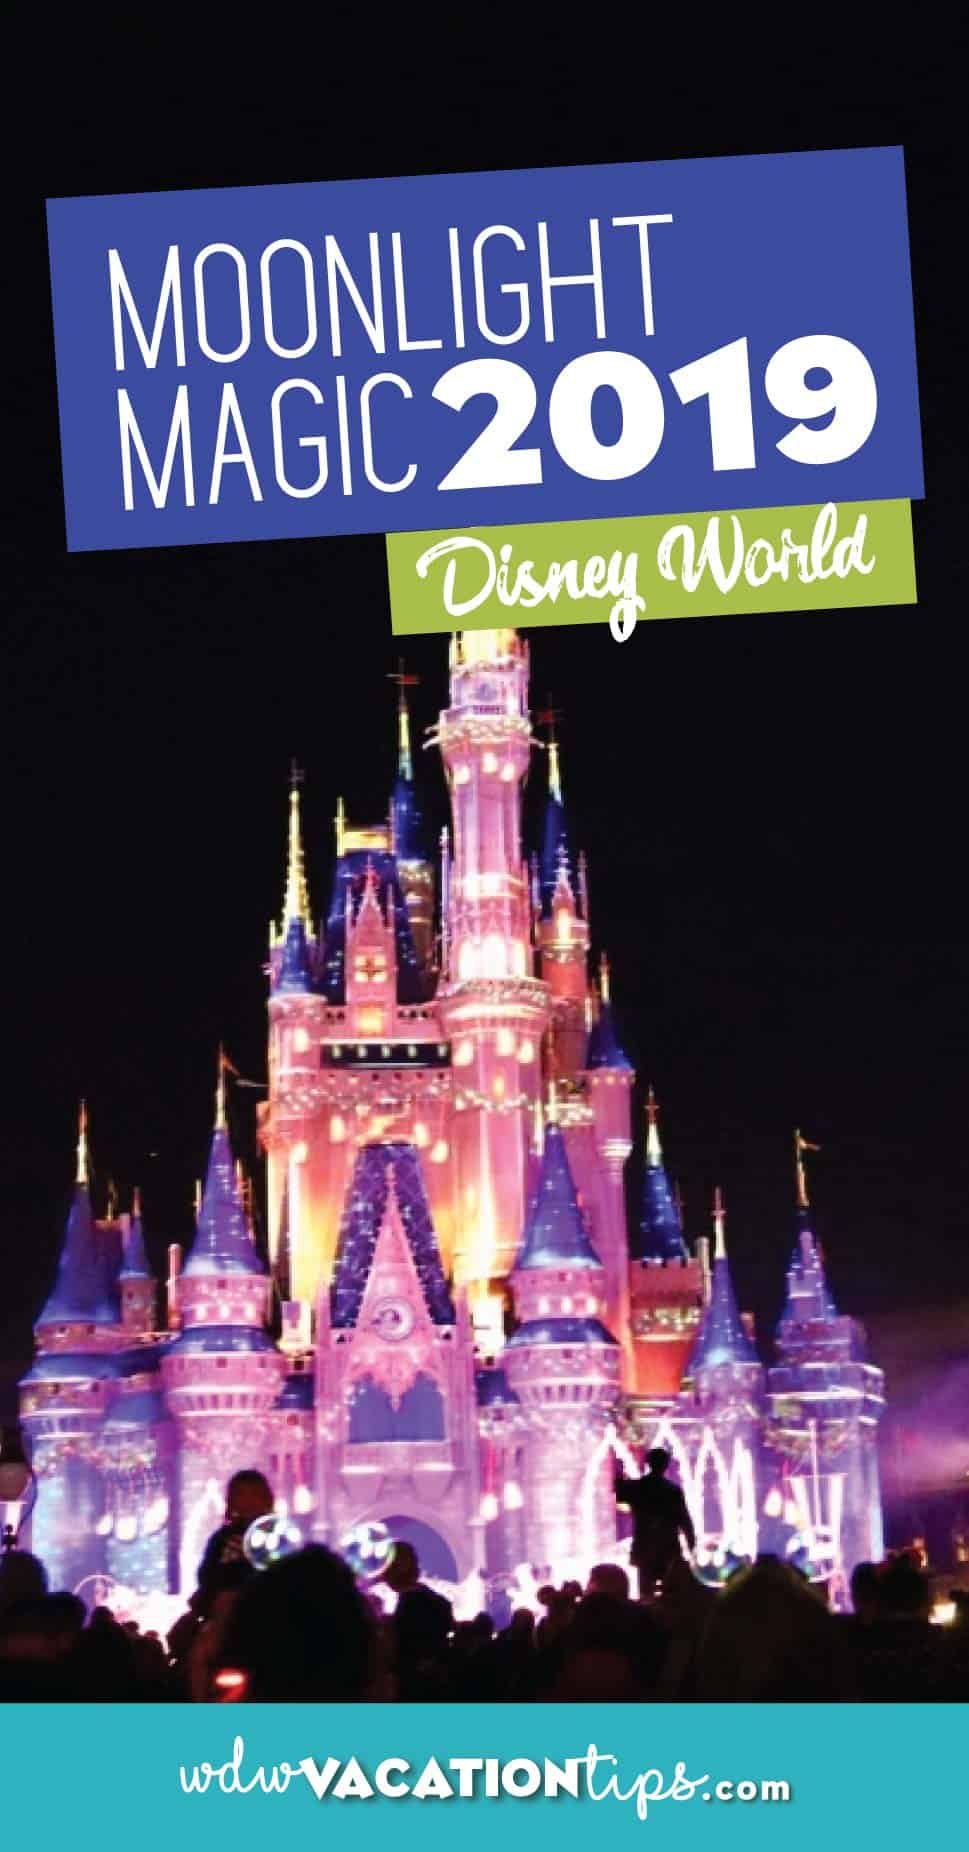 DVC Moonlight Magic for 2019 • WDW Vacation Tips